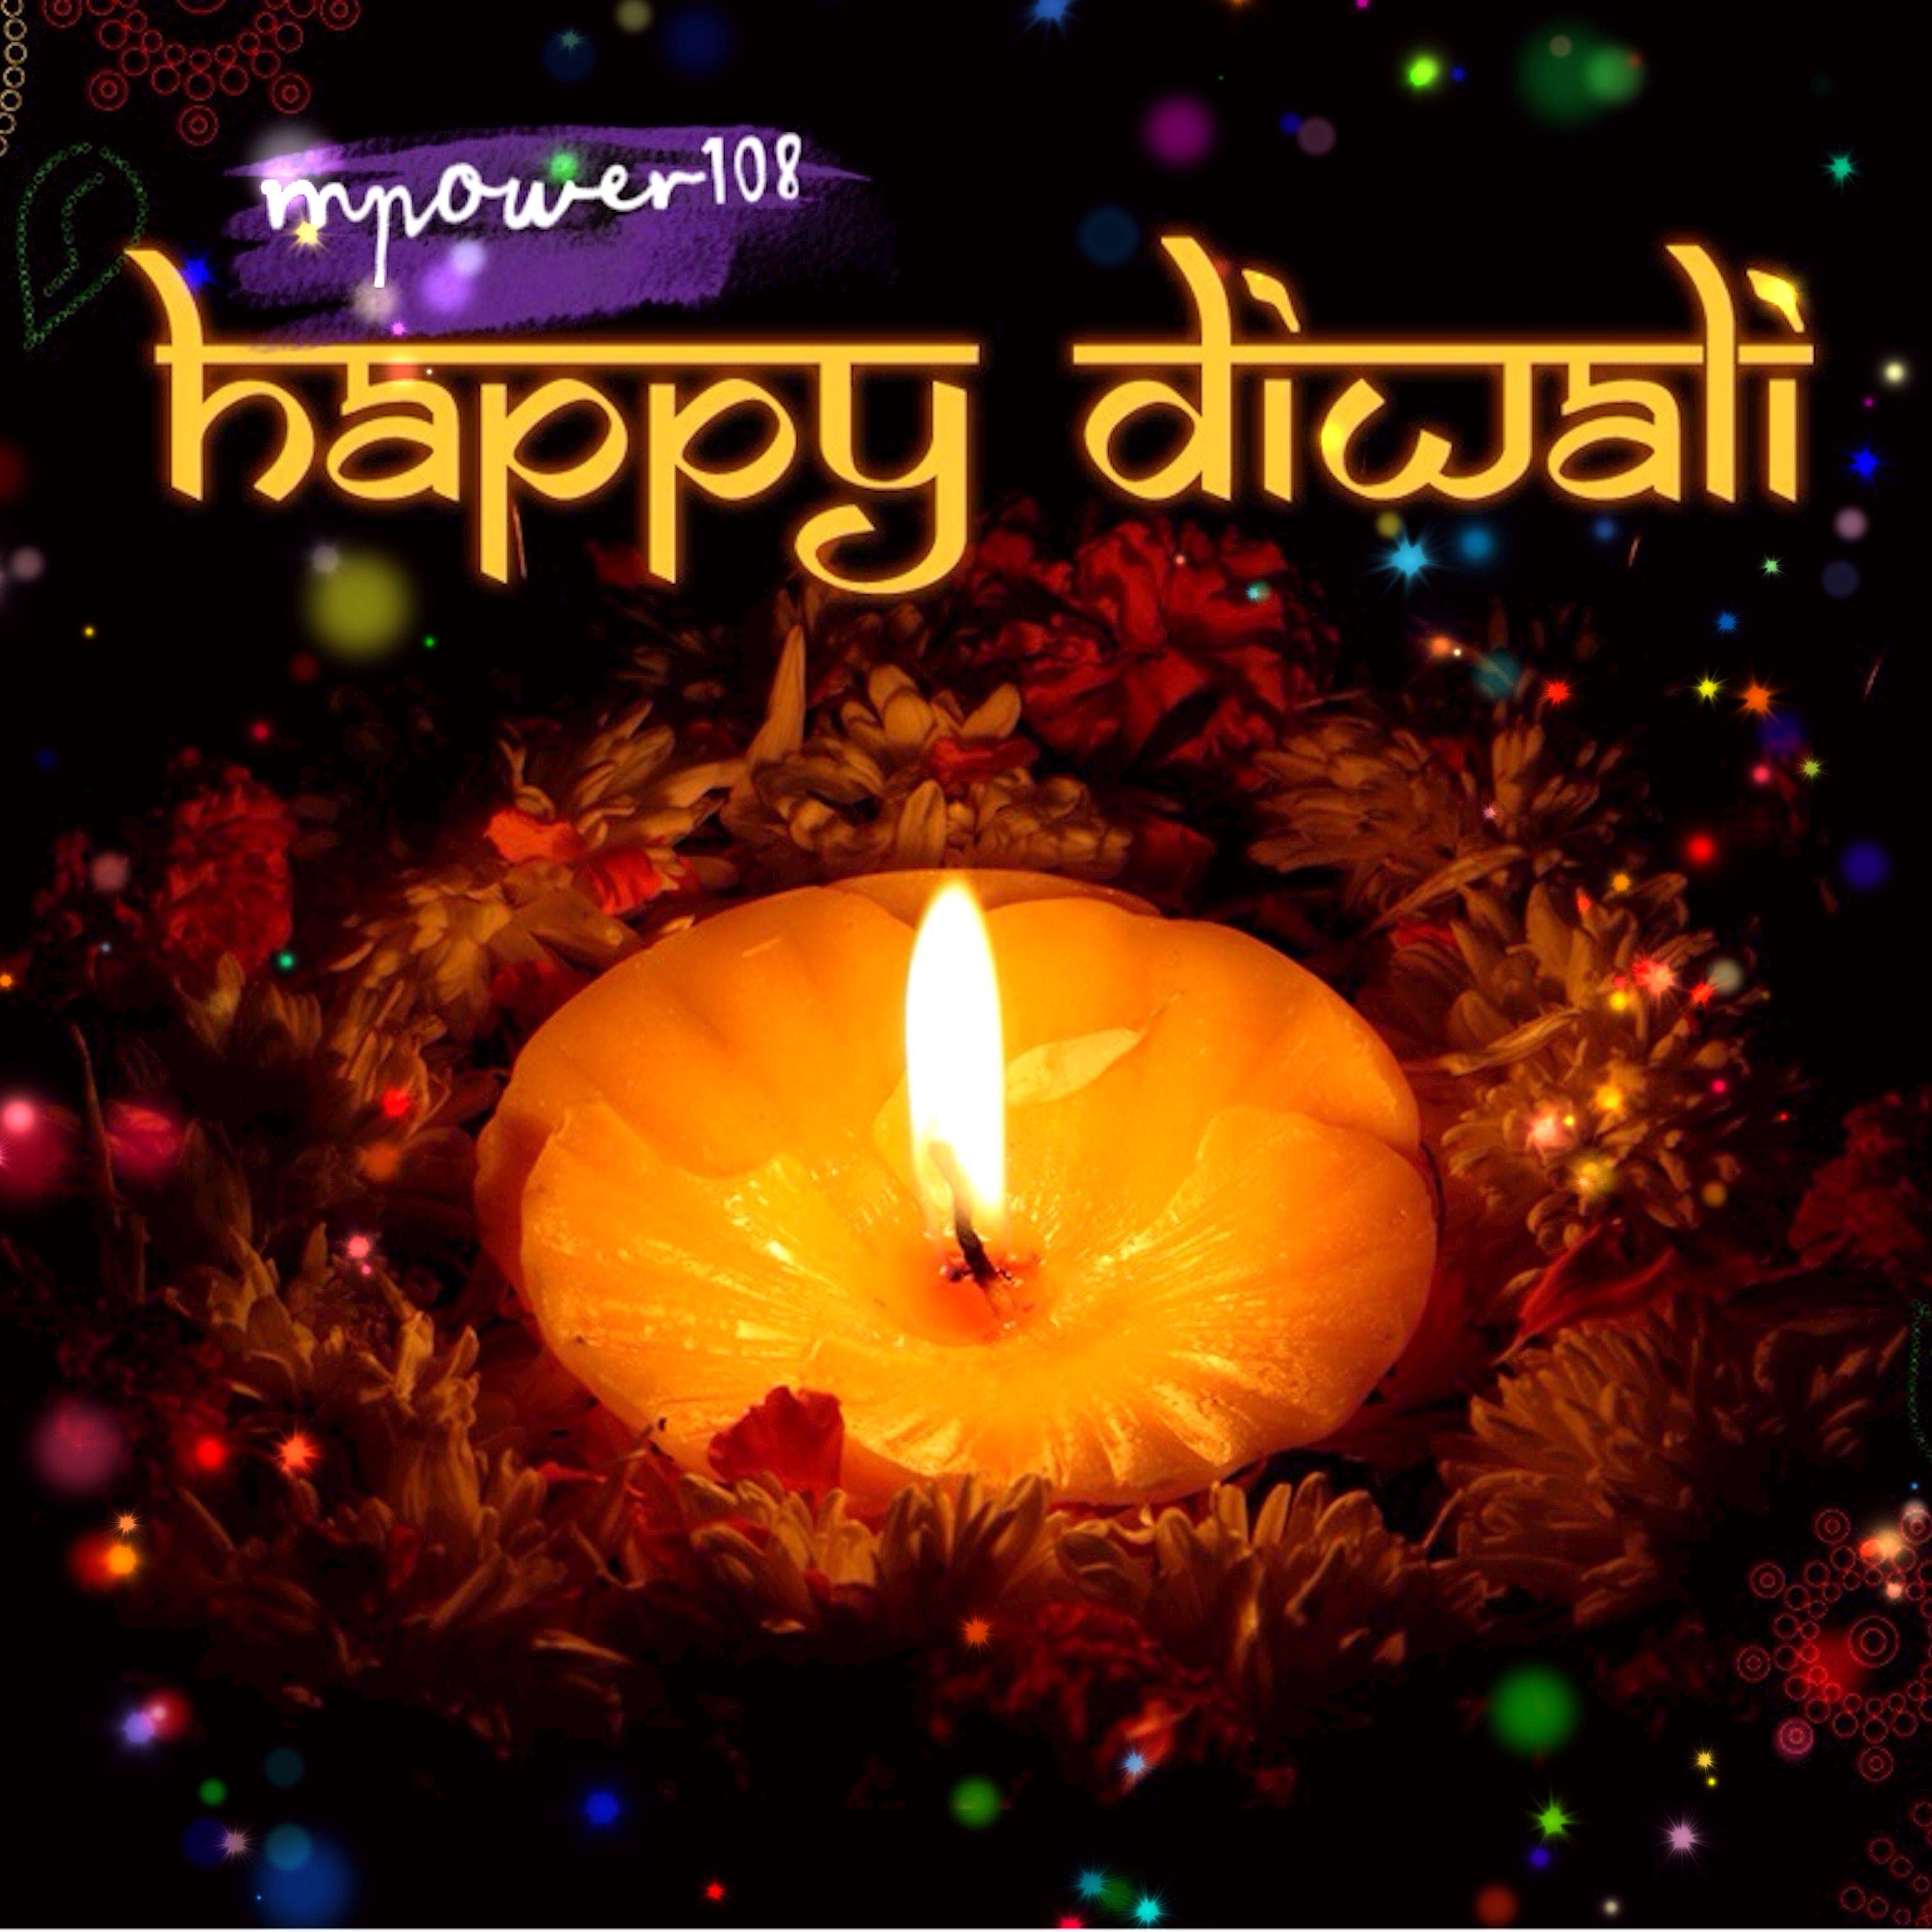 A very happy diwali this greeting is infused with a prayer that happy diwali 2013 greeting cards and kristyandbryce Gallery